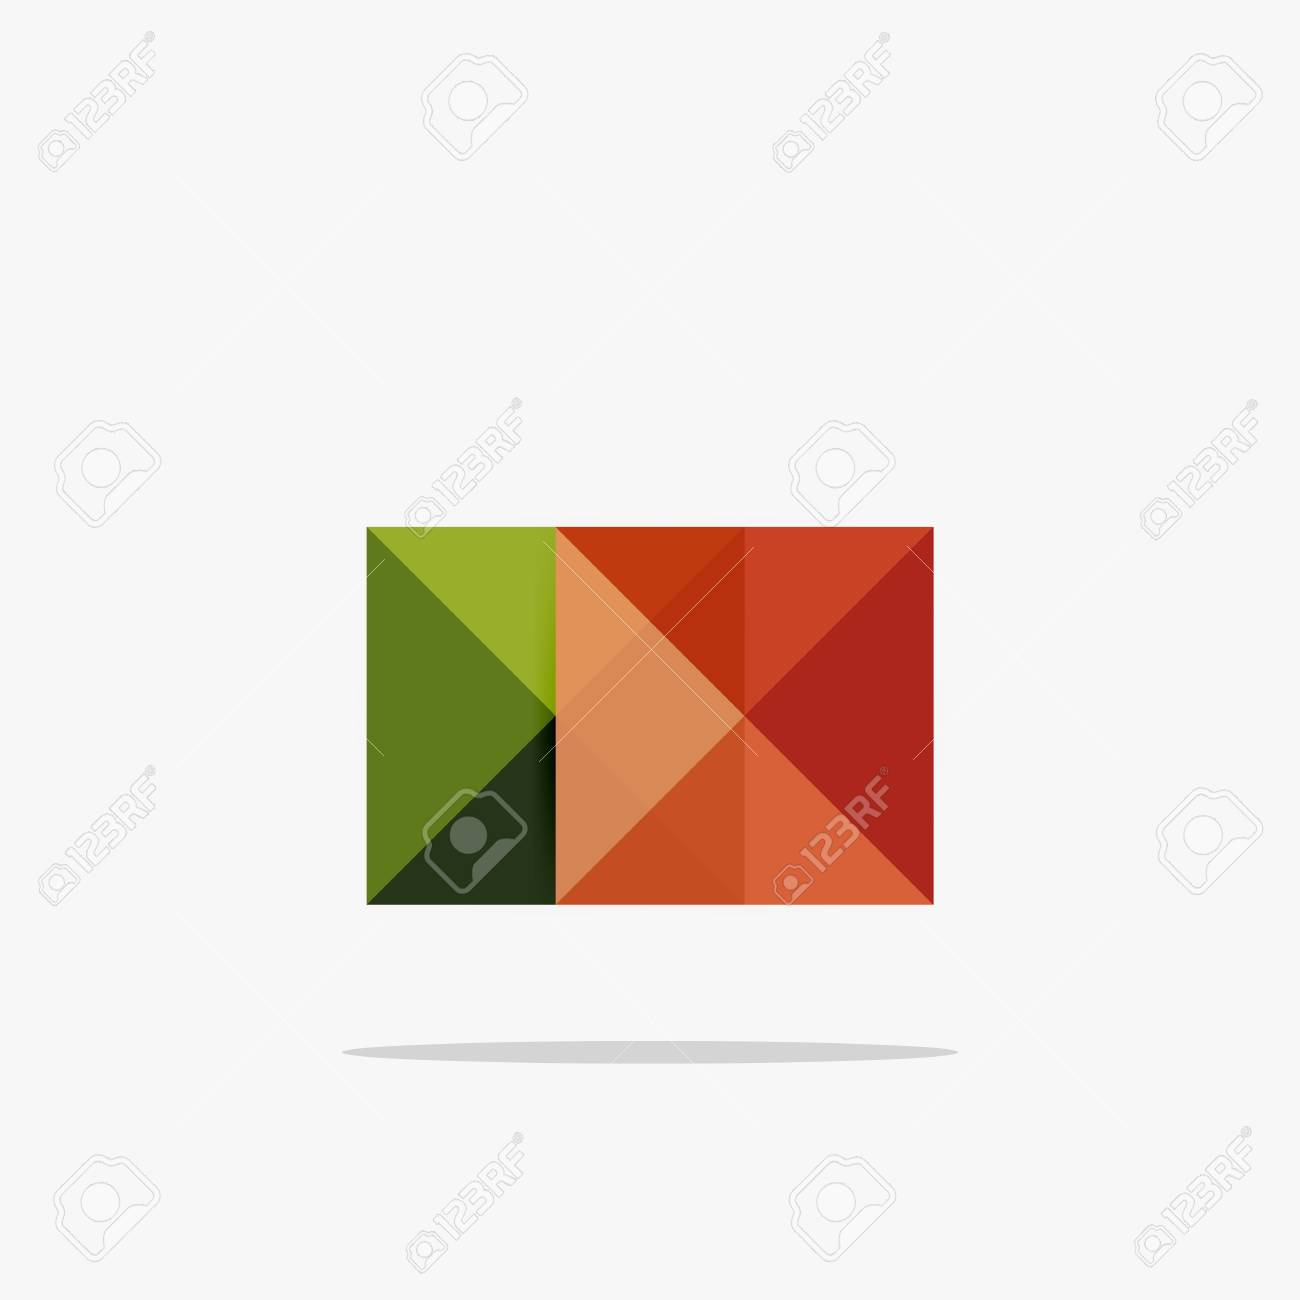 vector blank abstract squares background infographic template